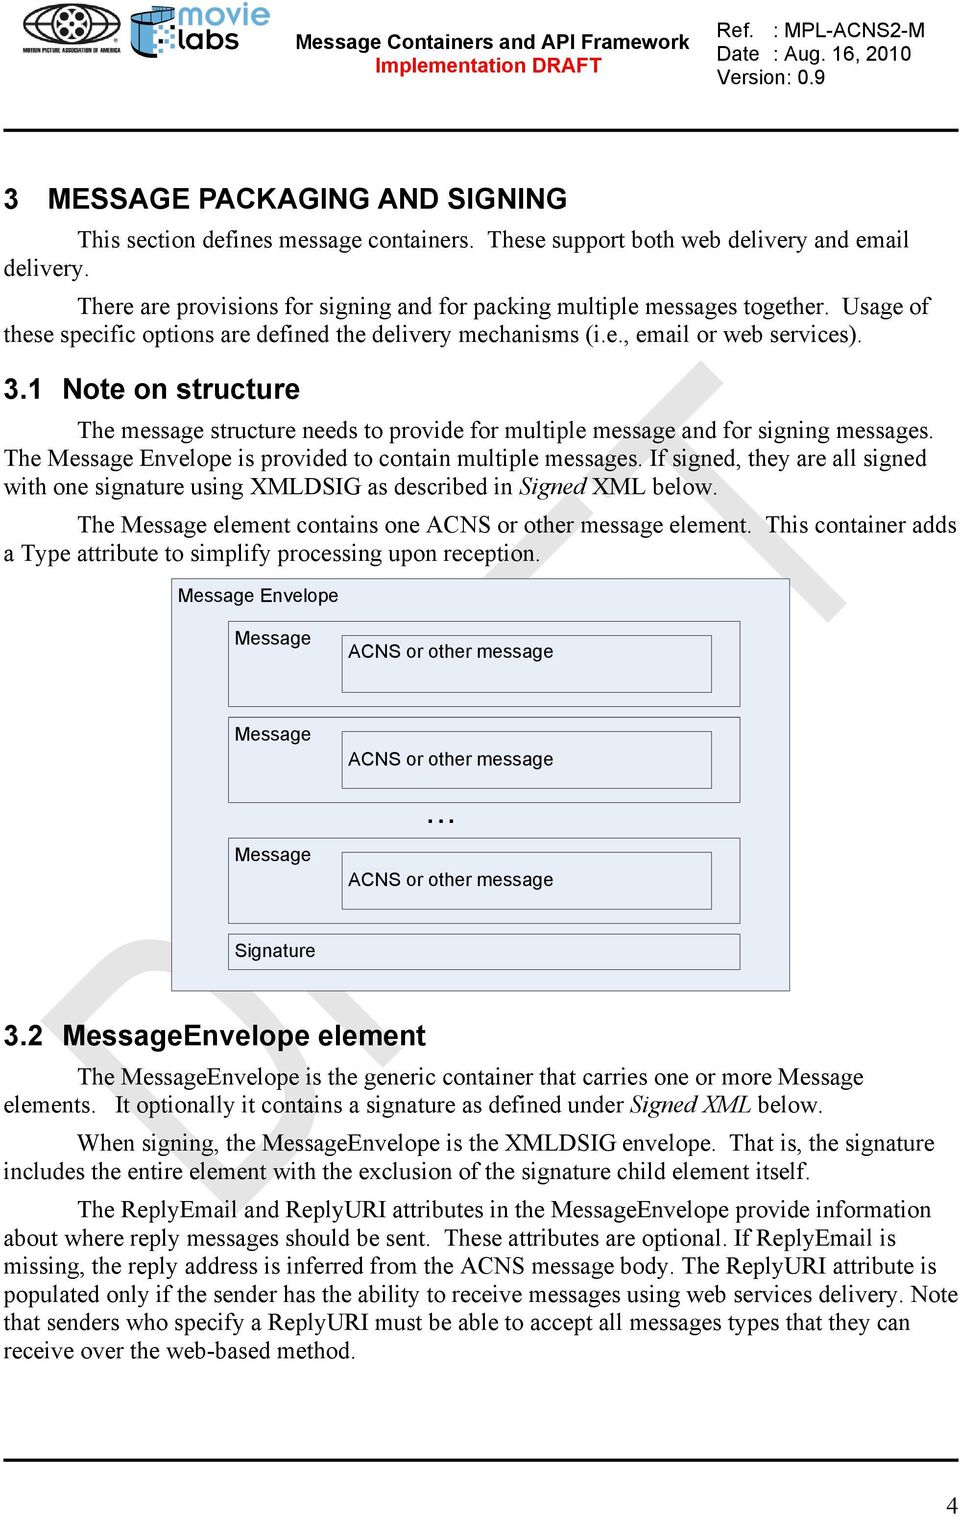 1 Note on structure The message structure needs to provide for multiple message and for signing messages. The Message Envelope is provided to contain multiple messages.